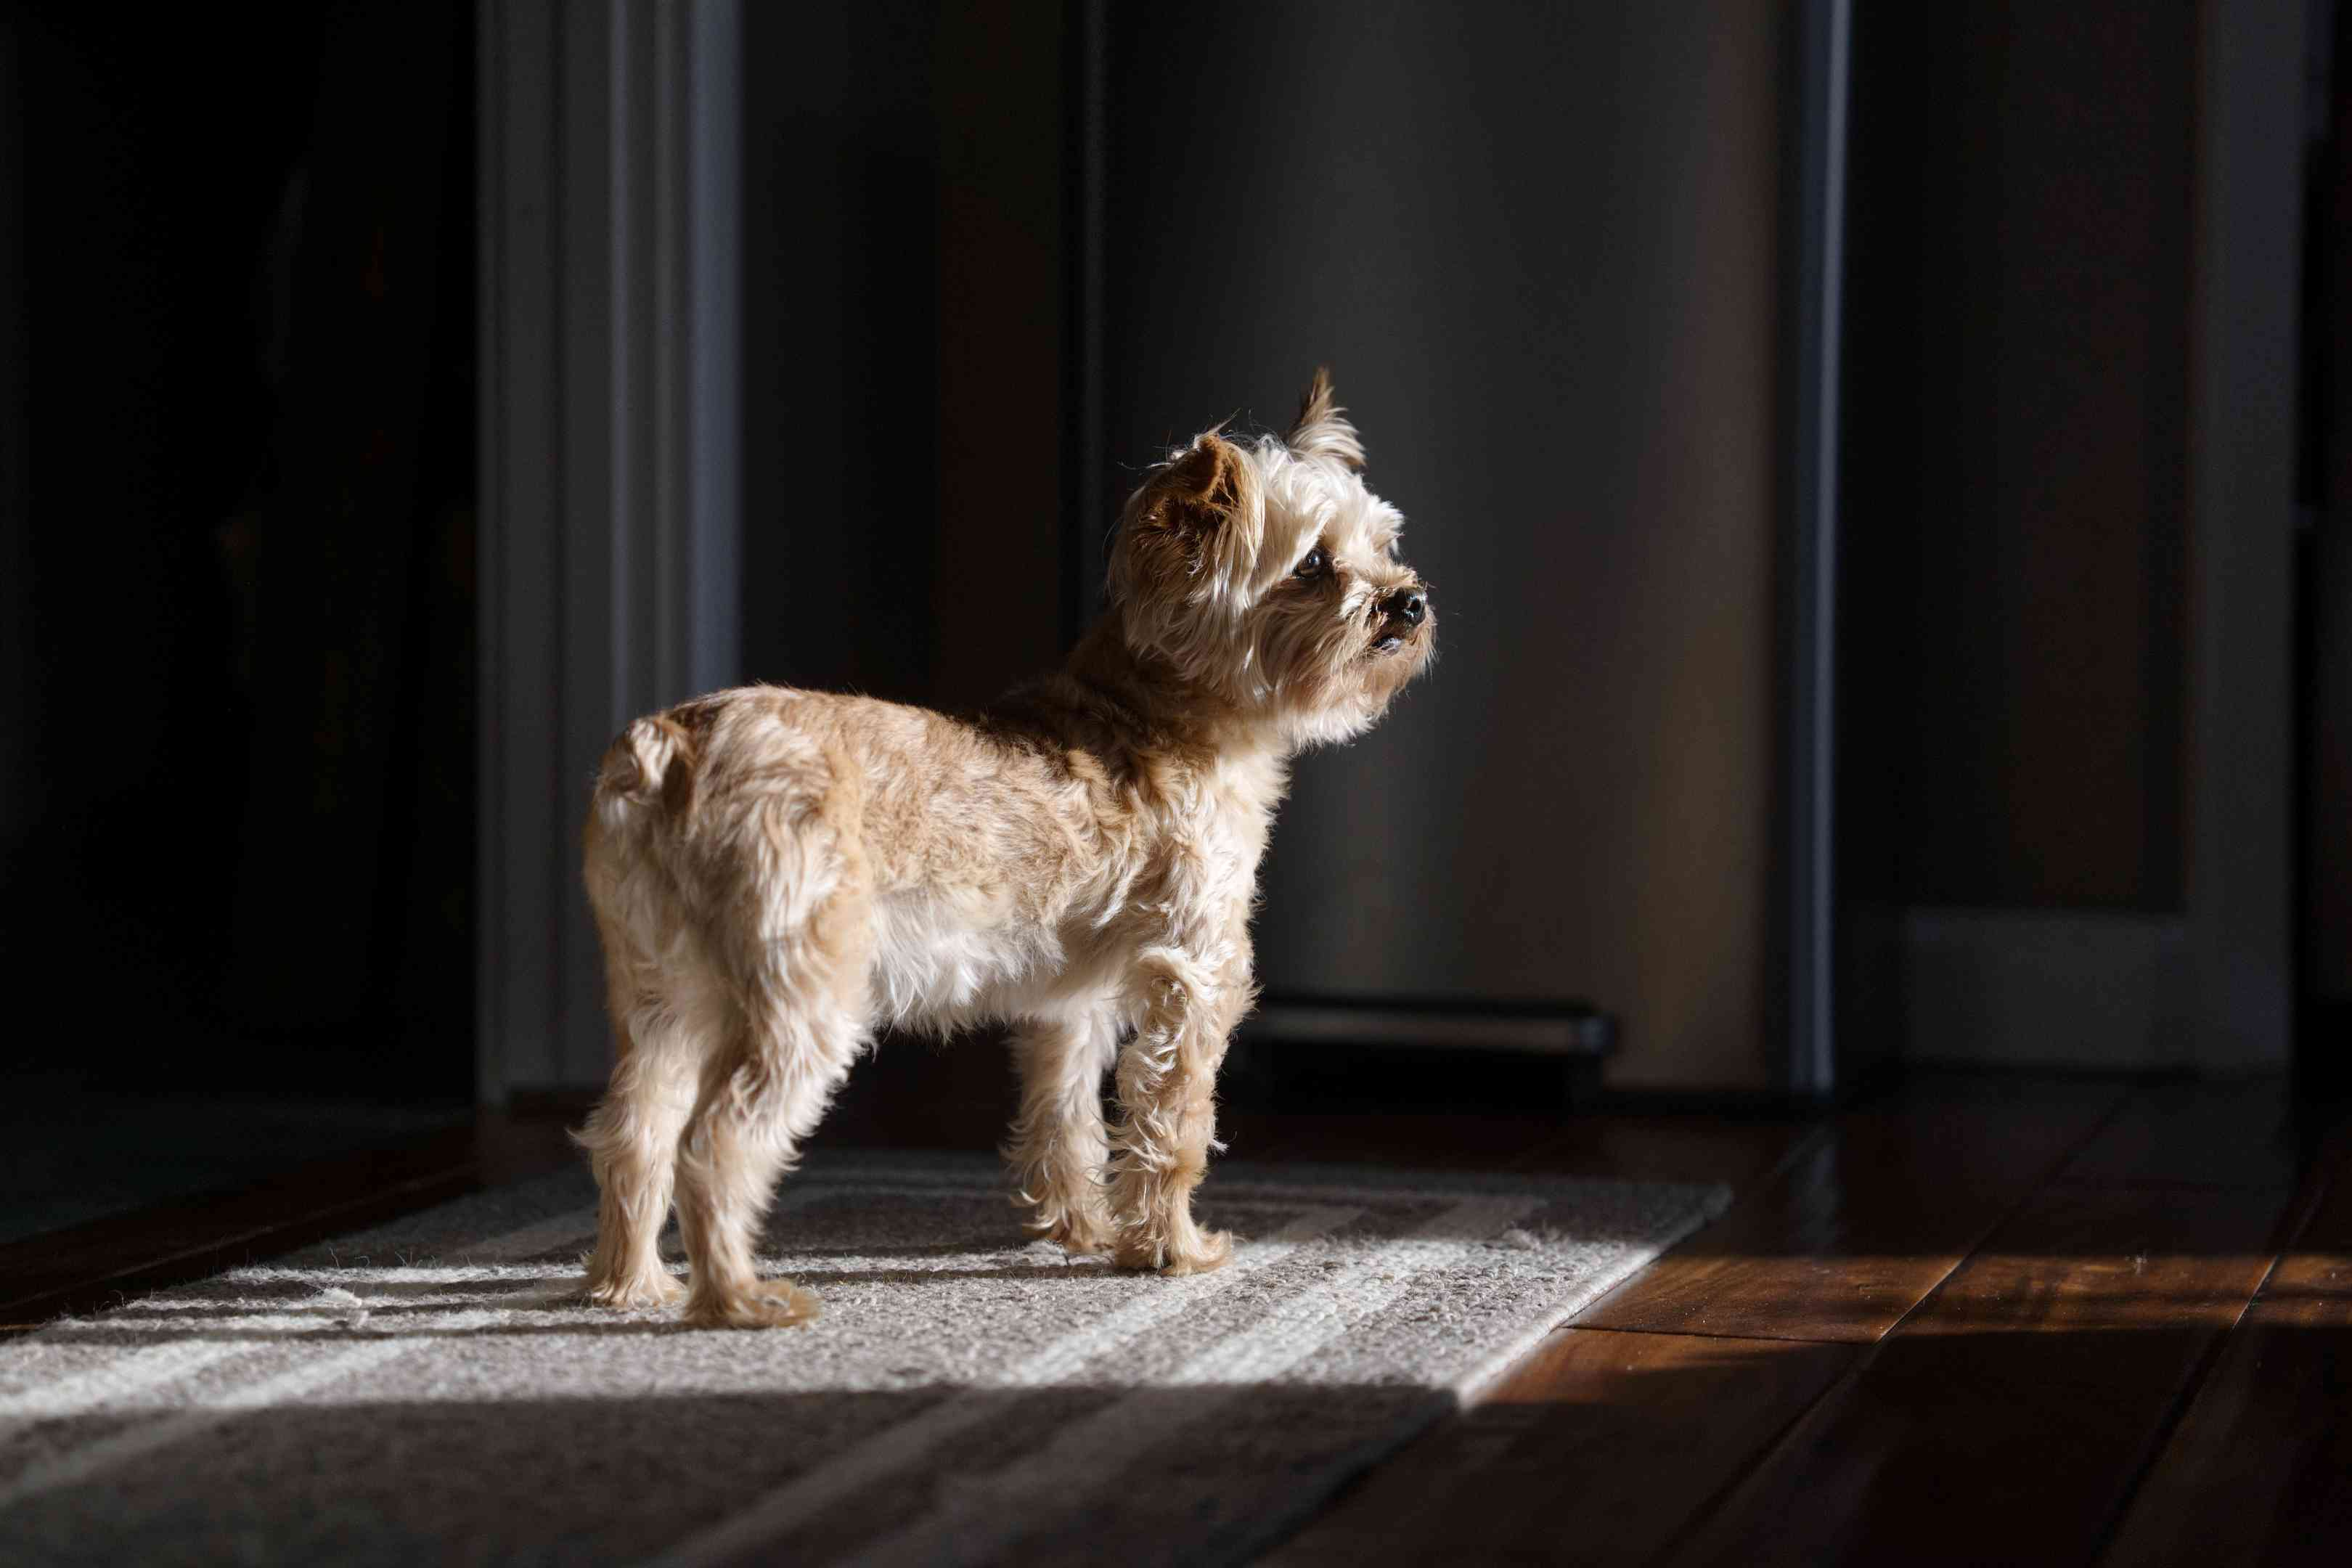 small terrier mix dog with docked tail stands in sunlight on gray rug